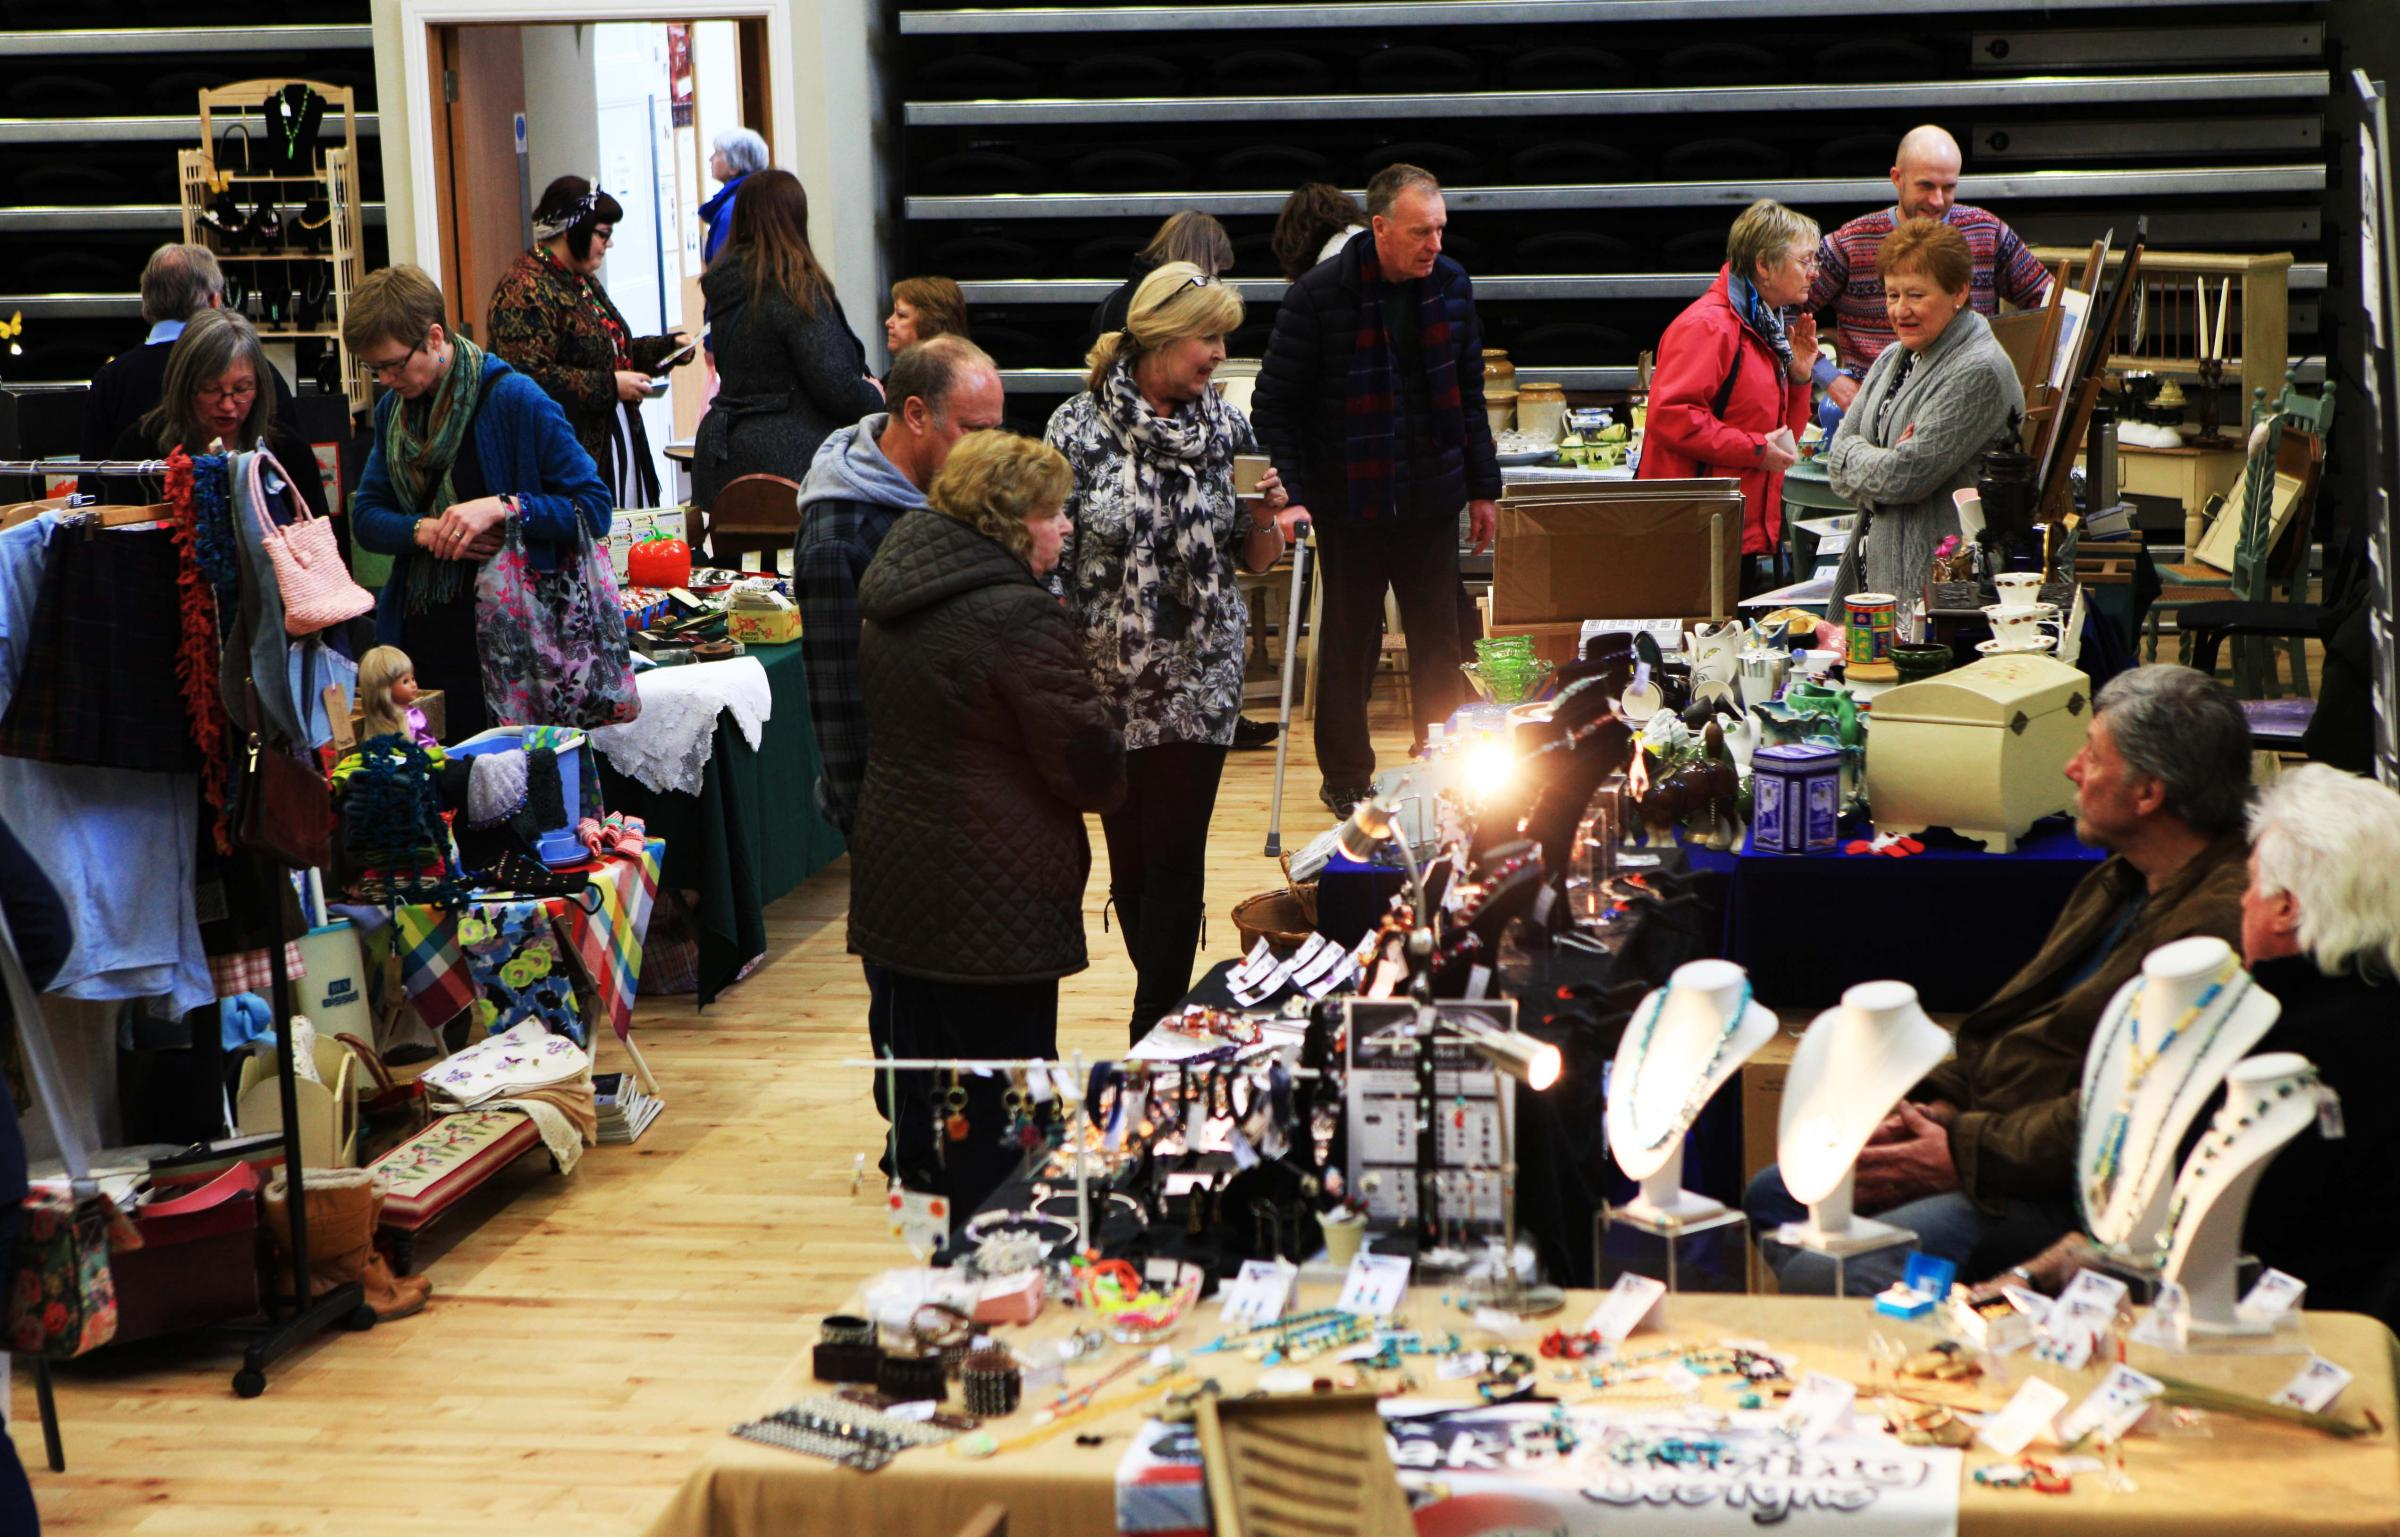 Customers browse goods on sale at Barnard Castle's first Chic Vintique event